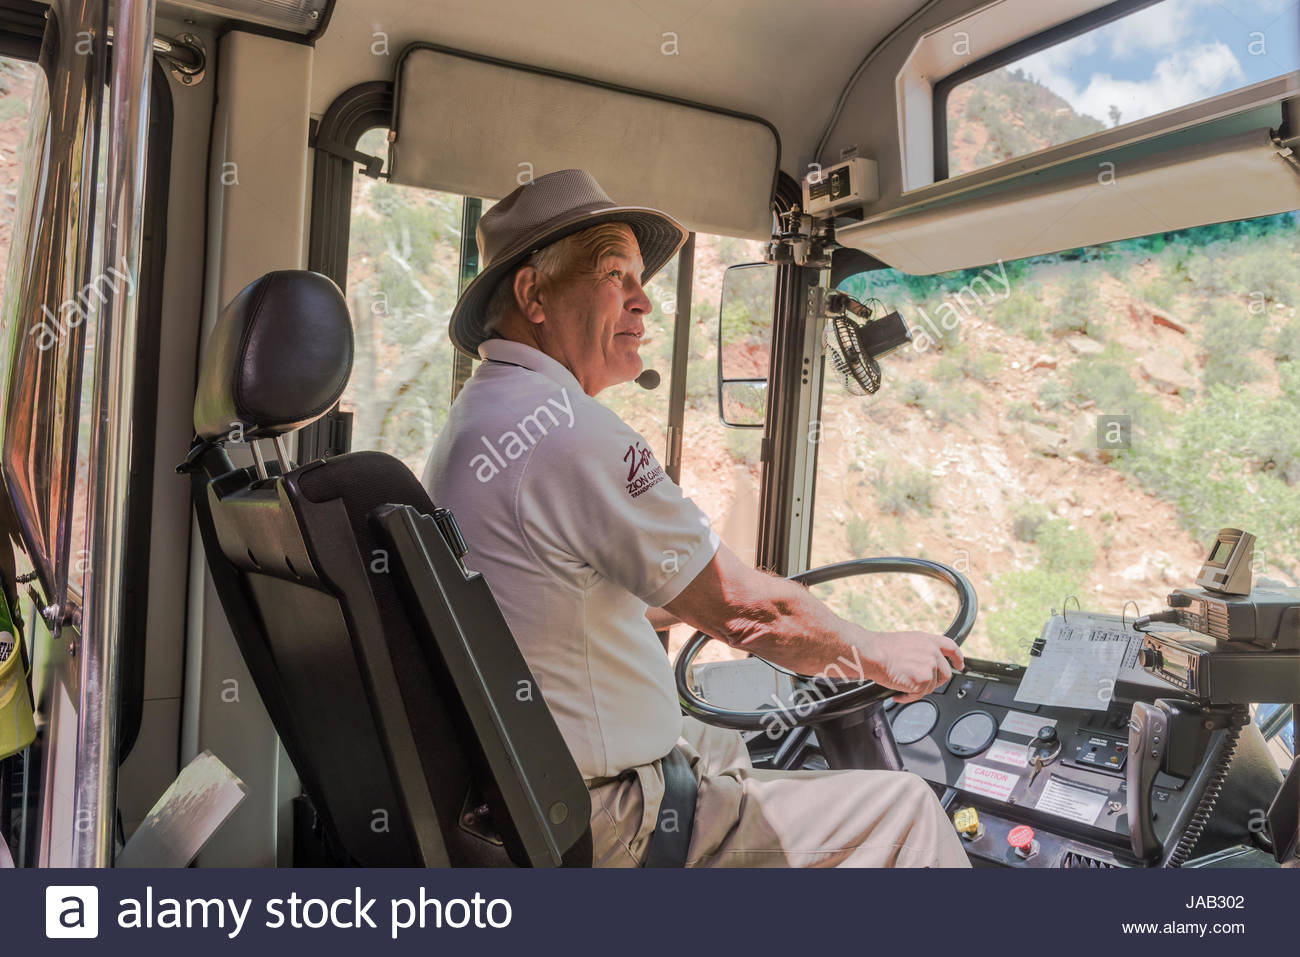 Shuttle bus driver, Zion National Park, Southern Utah, USA - Stock Image